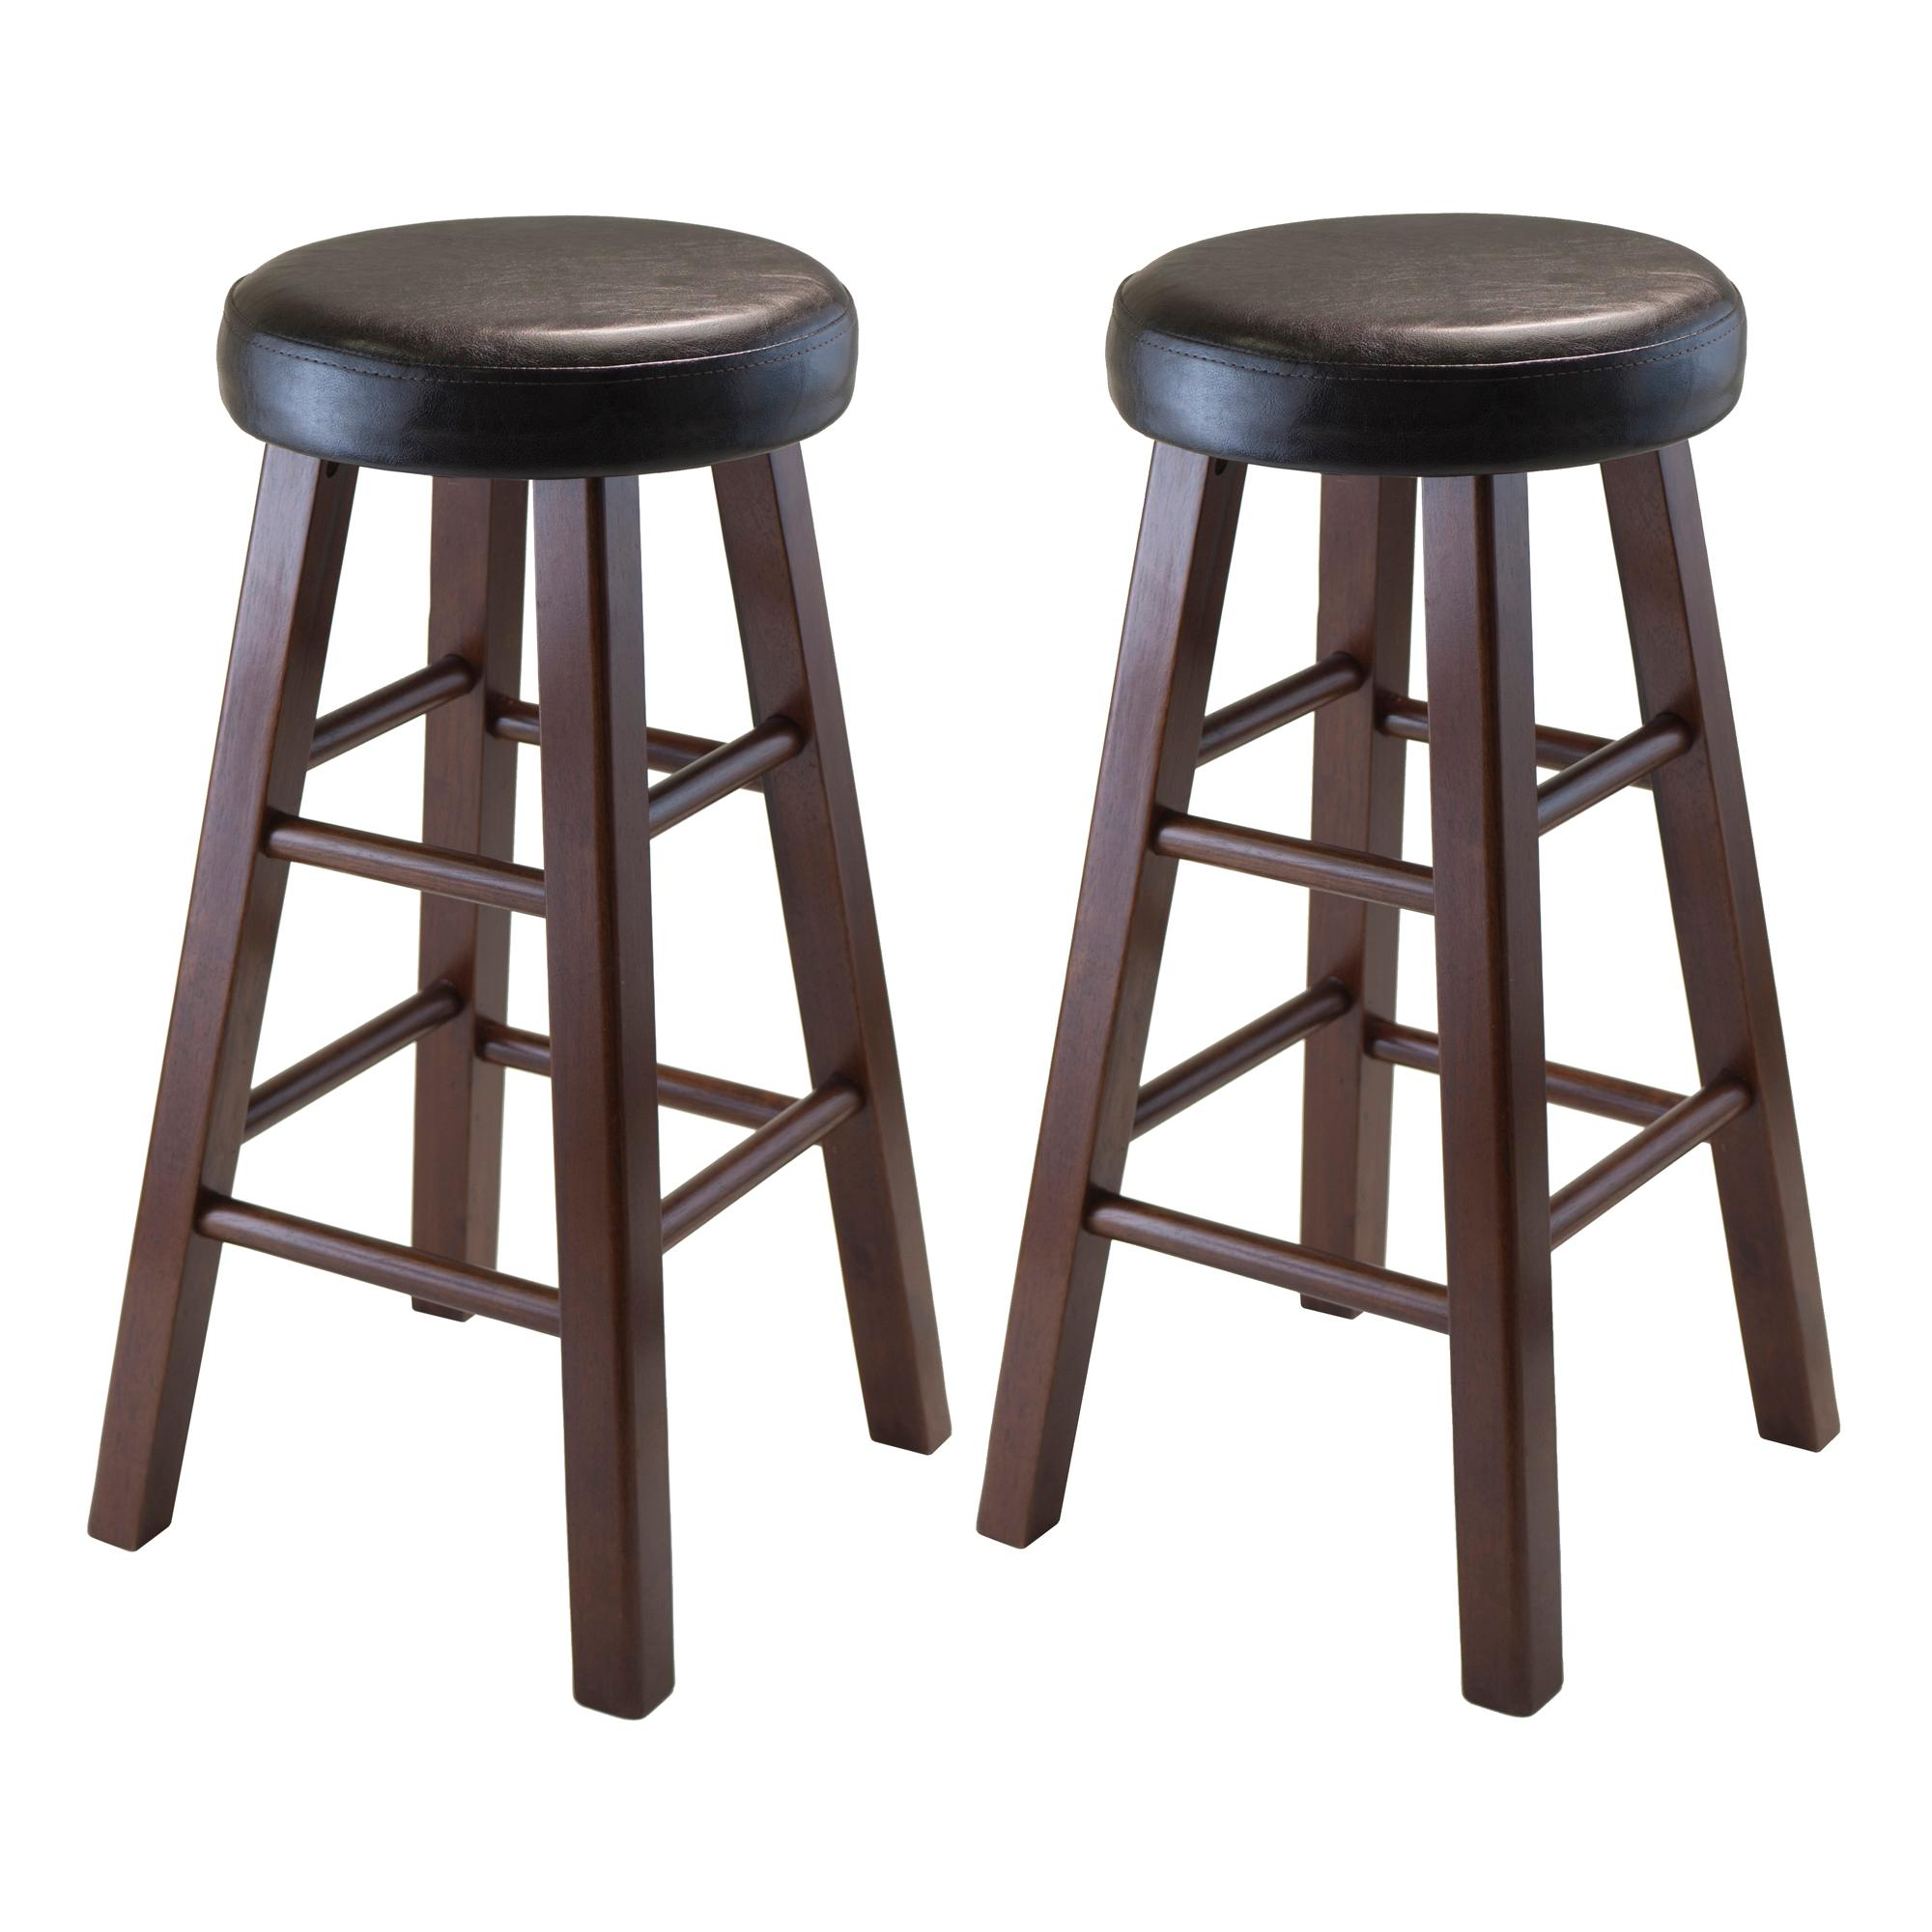 winsome wood marta assembled round counter stool with pu leather cushion seat square legs